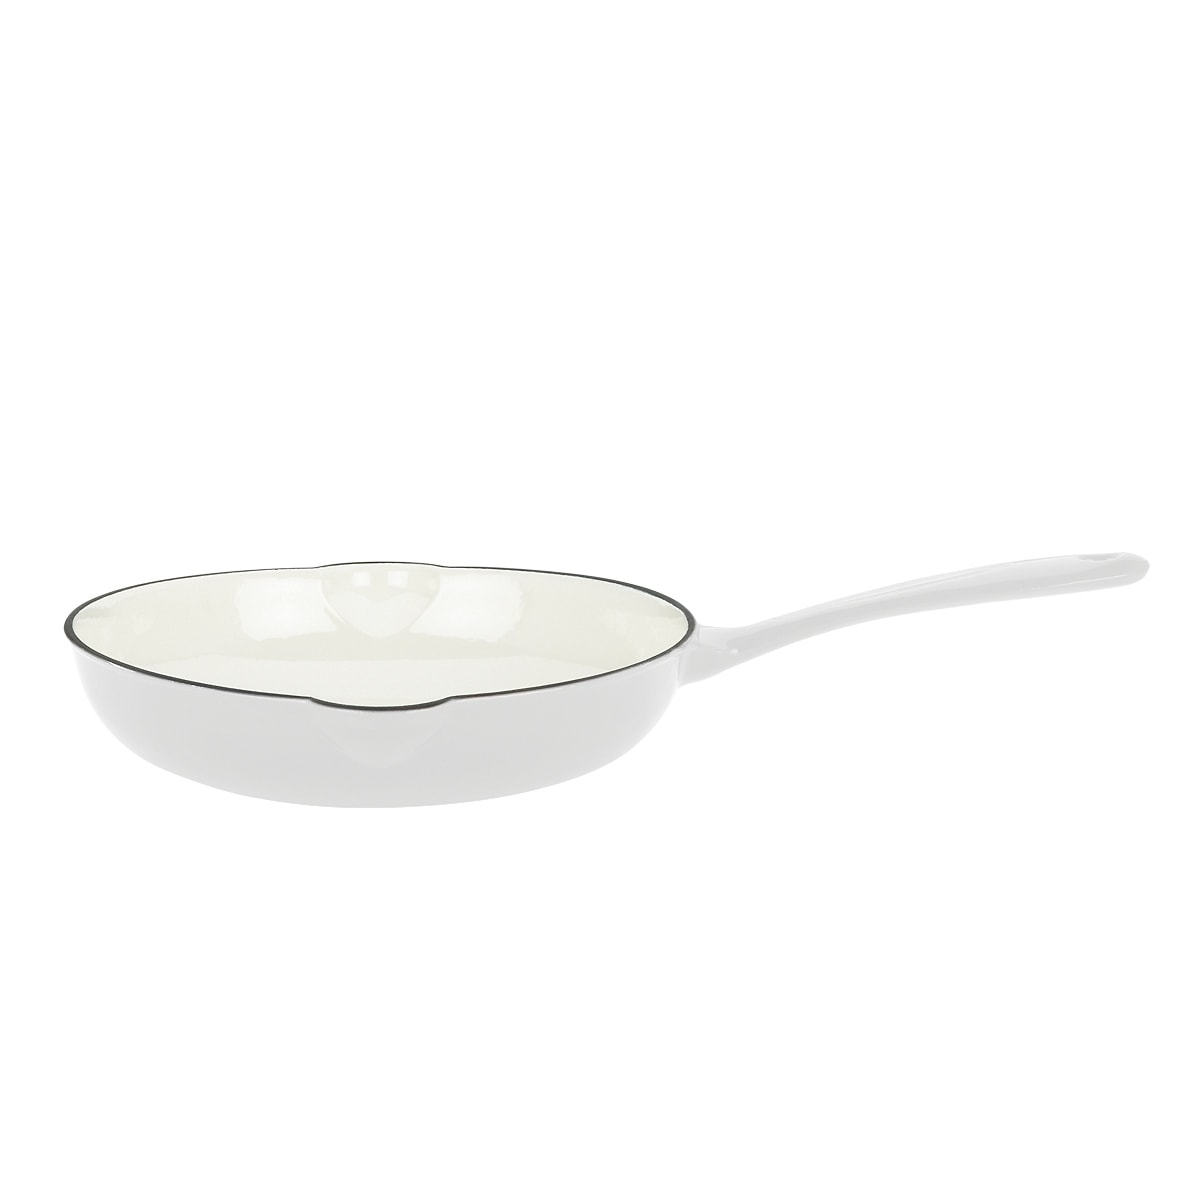 Mario Batali by Dansk Classic White 14-inch Cast Iron Open Saute Pan